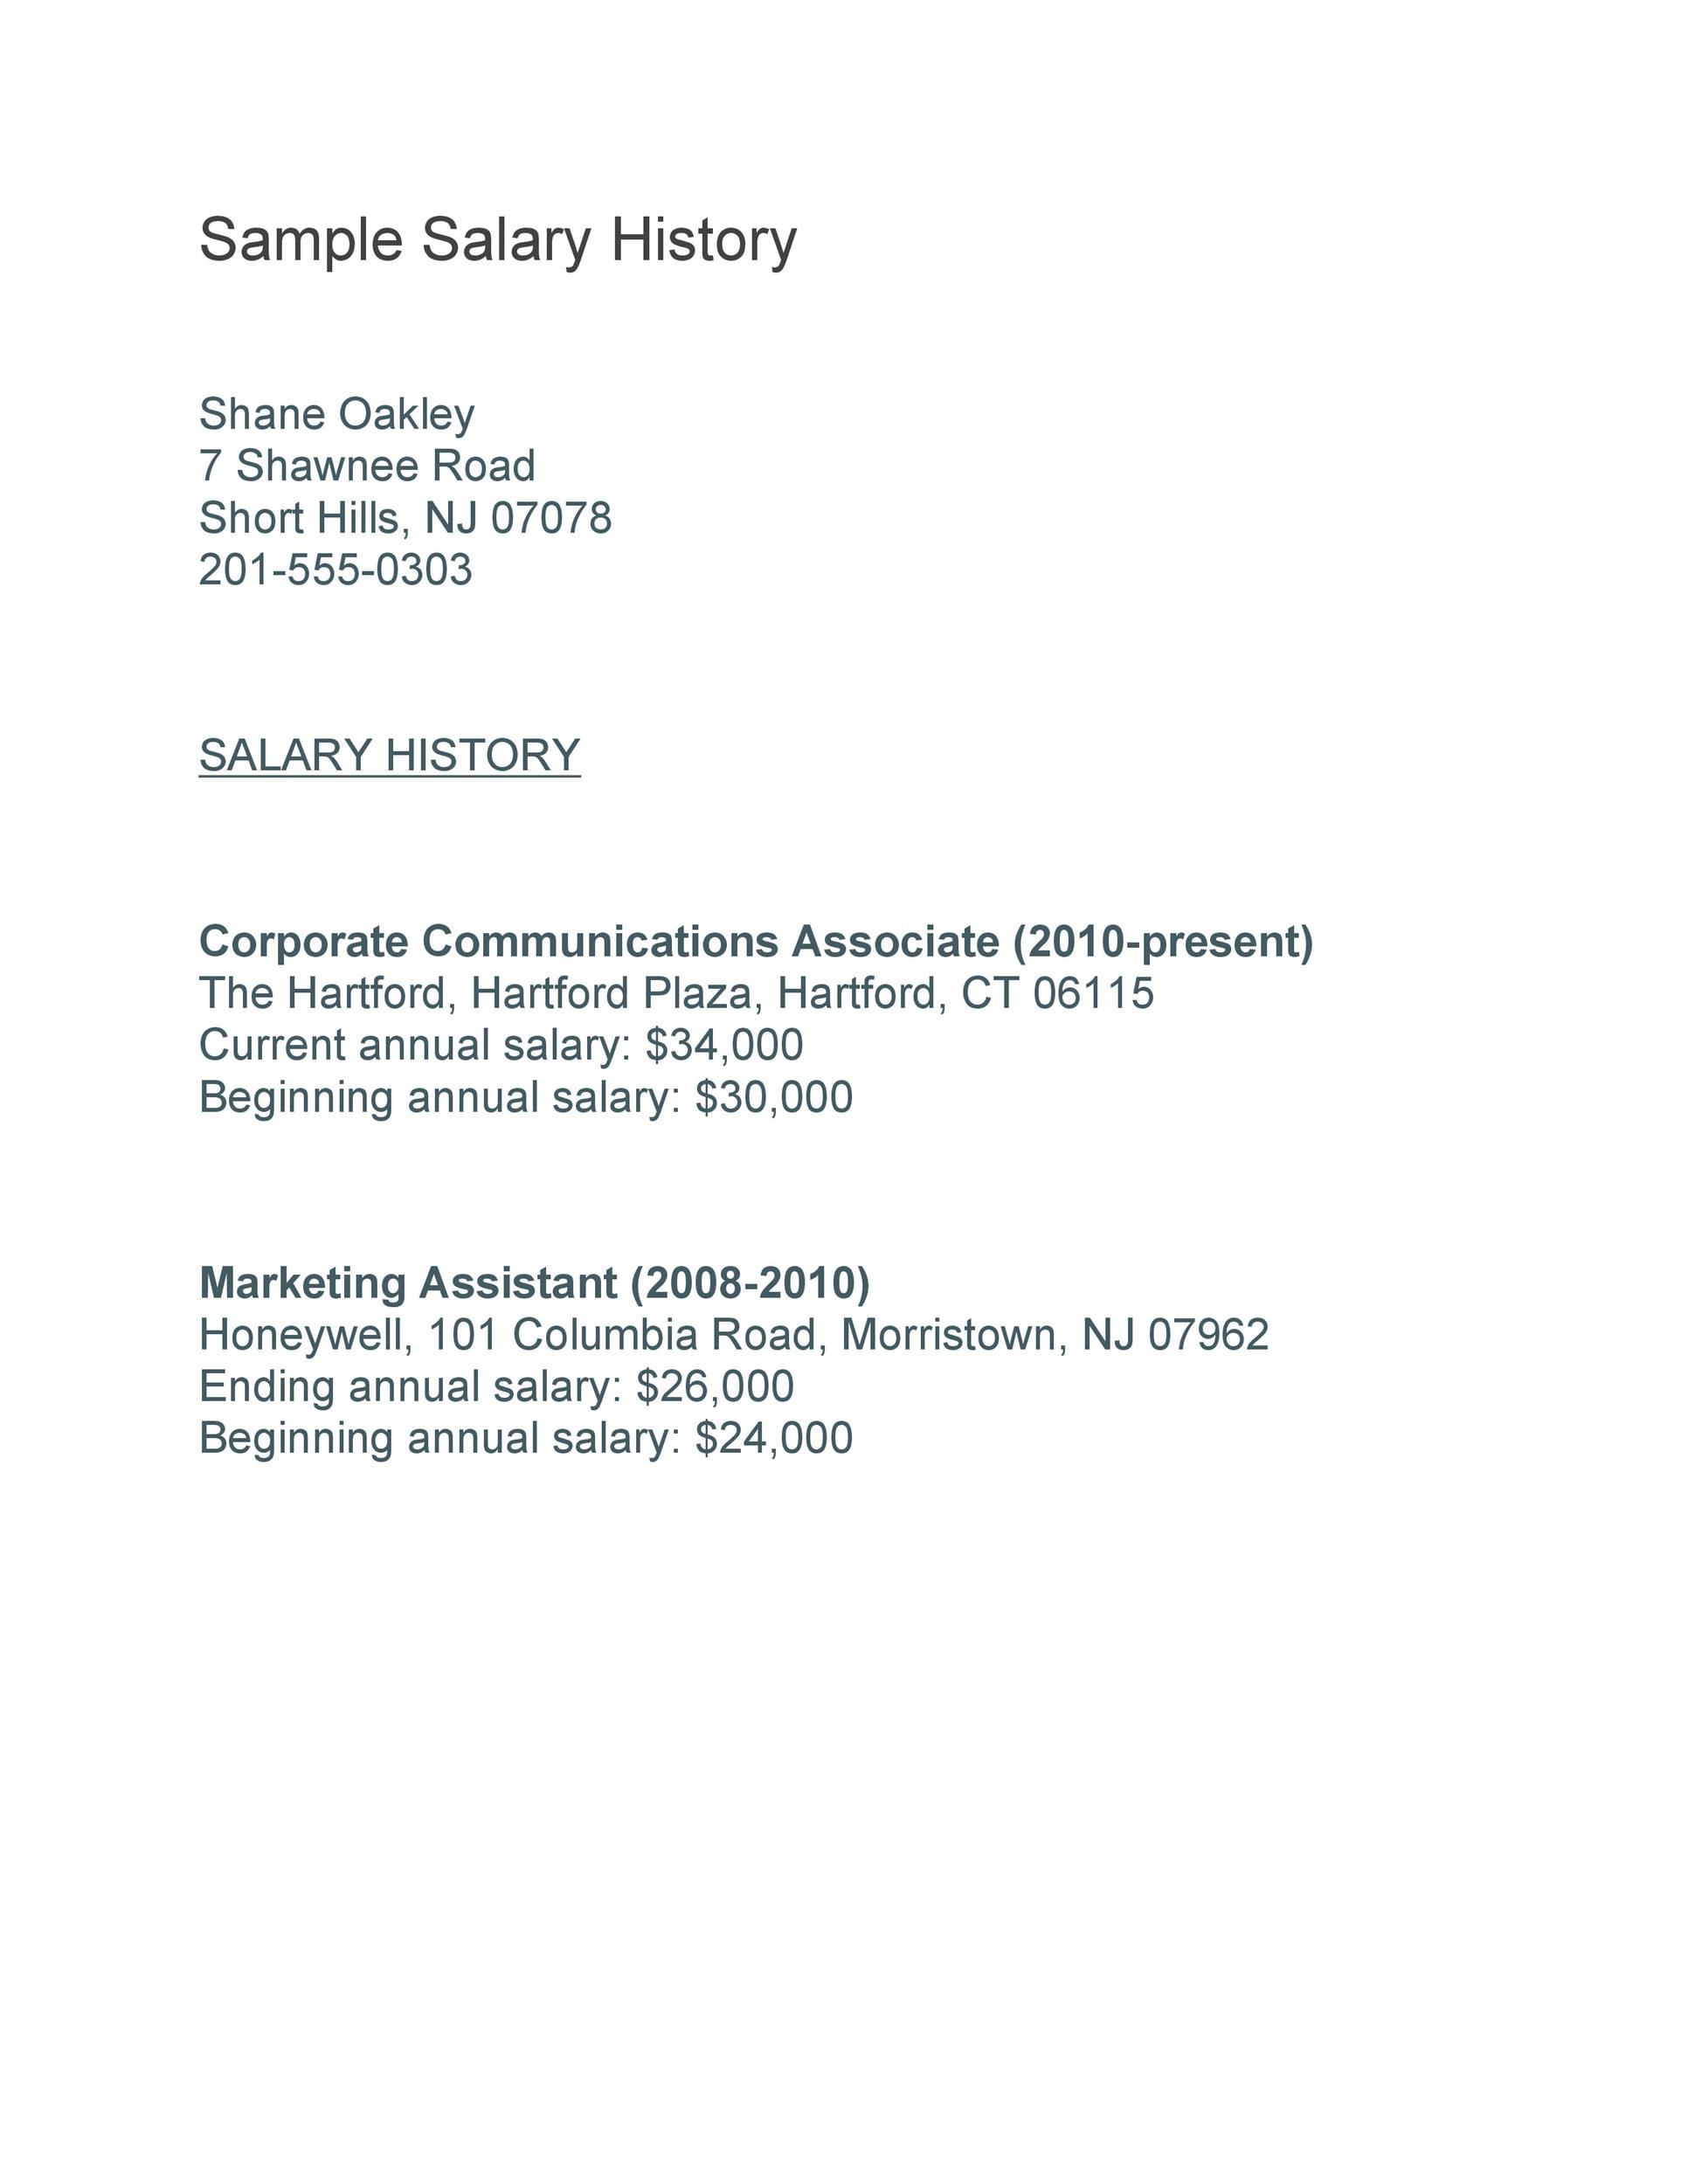 Salary Proposal Template A Wesome Sample Salary Proposal Letters